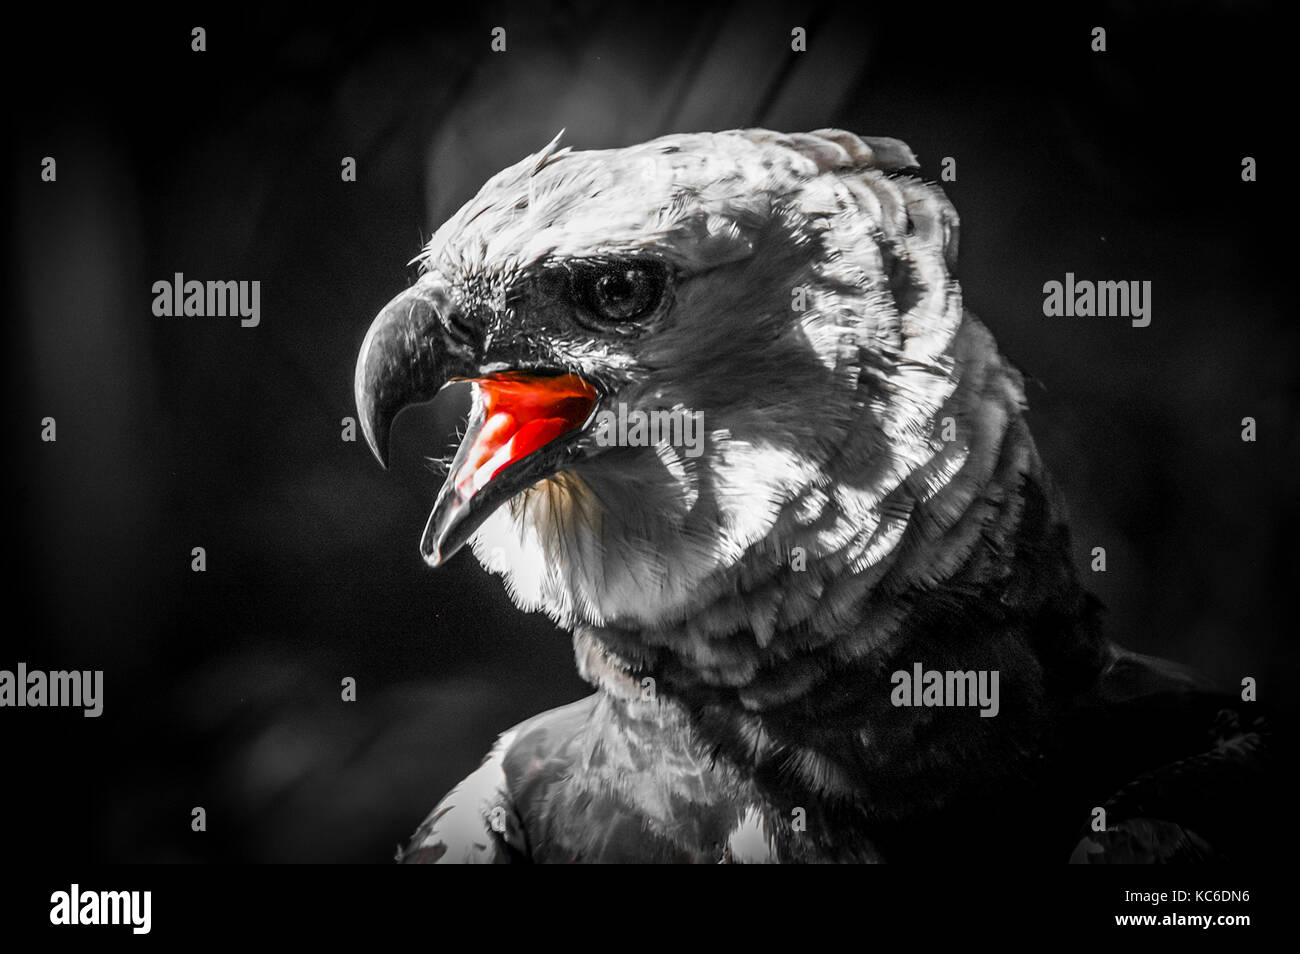 Black and white stylish image of the harpy eagle with red colored tongue Stock Photo